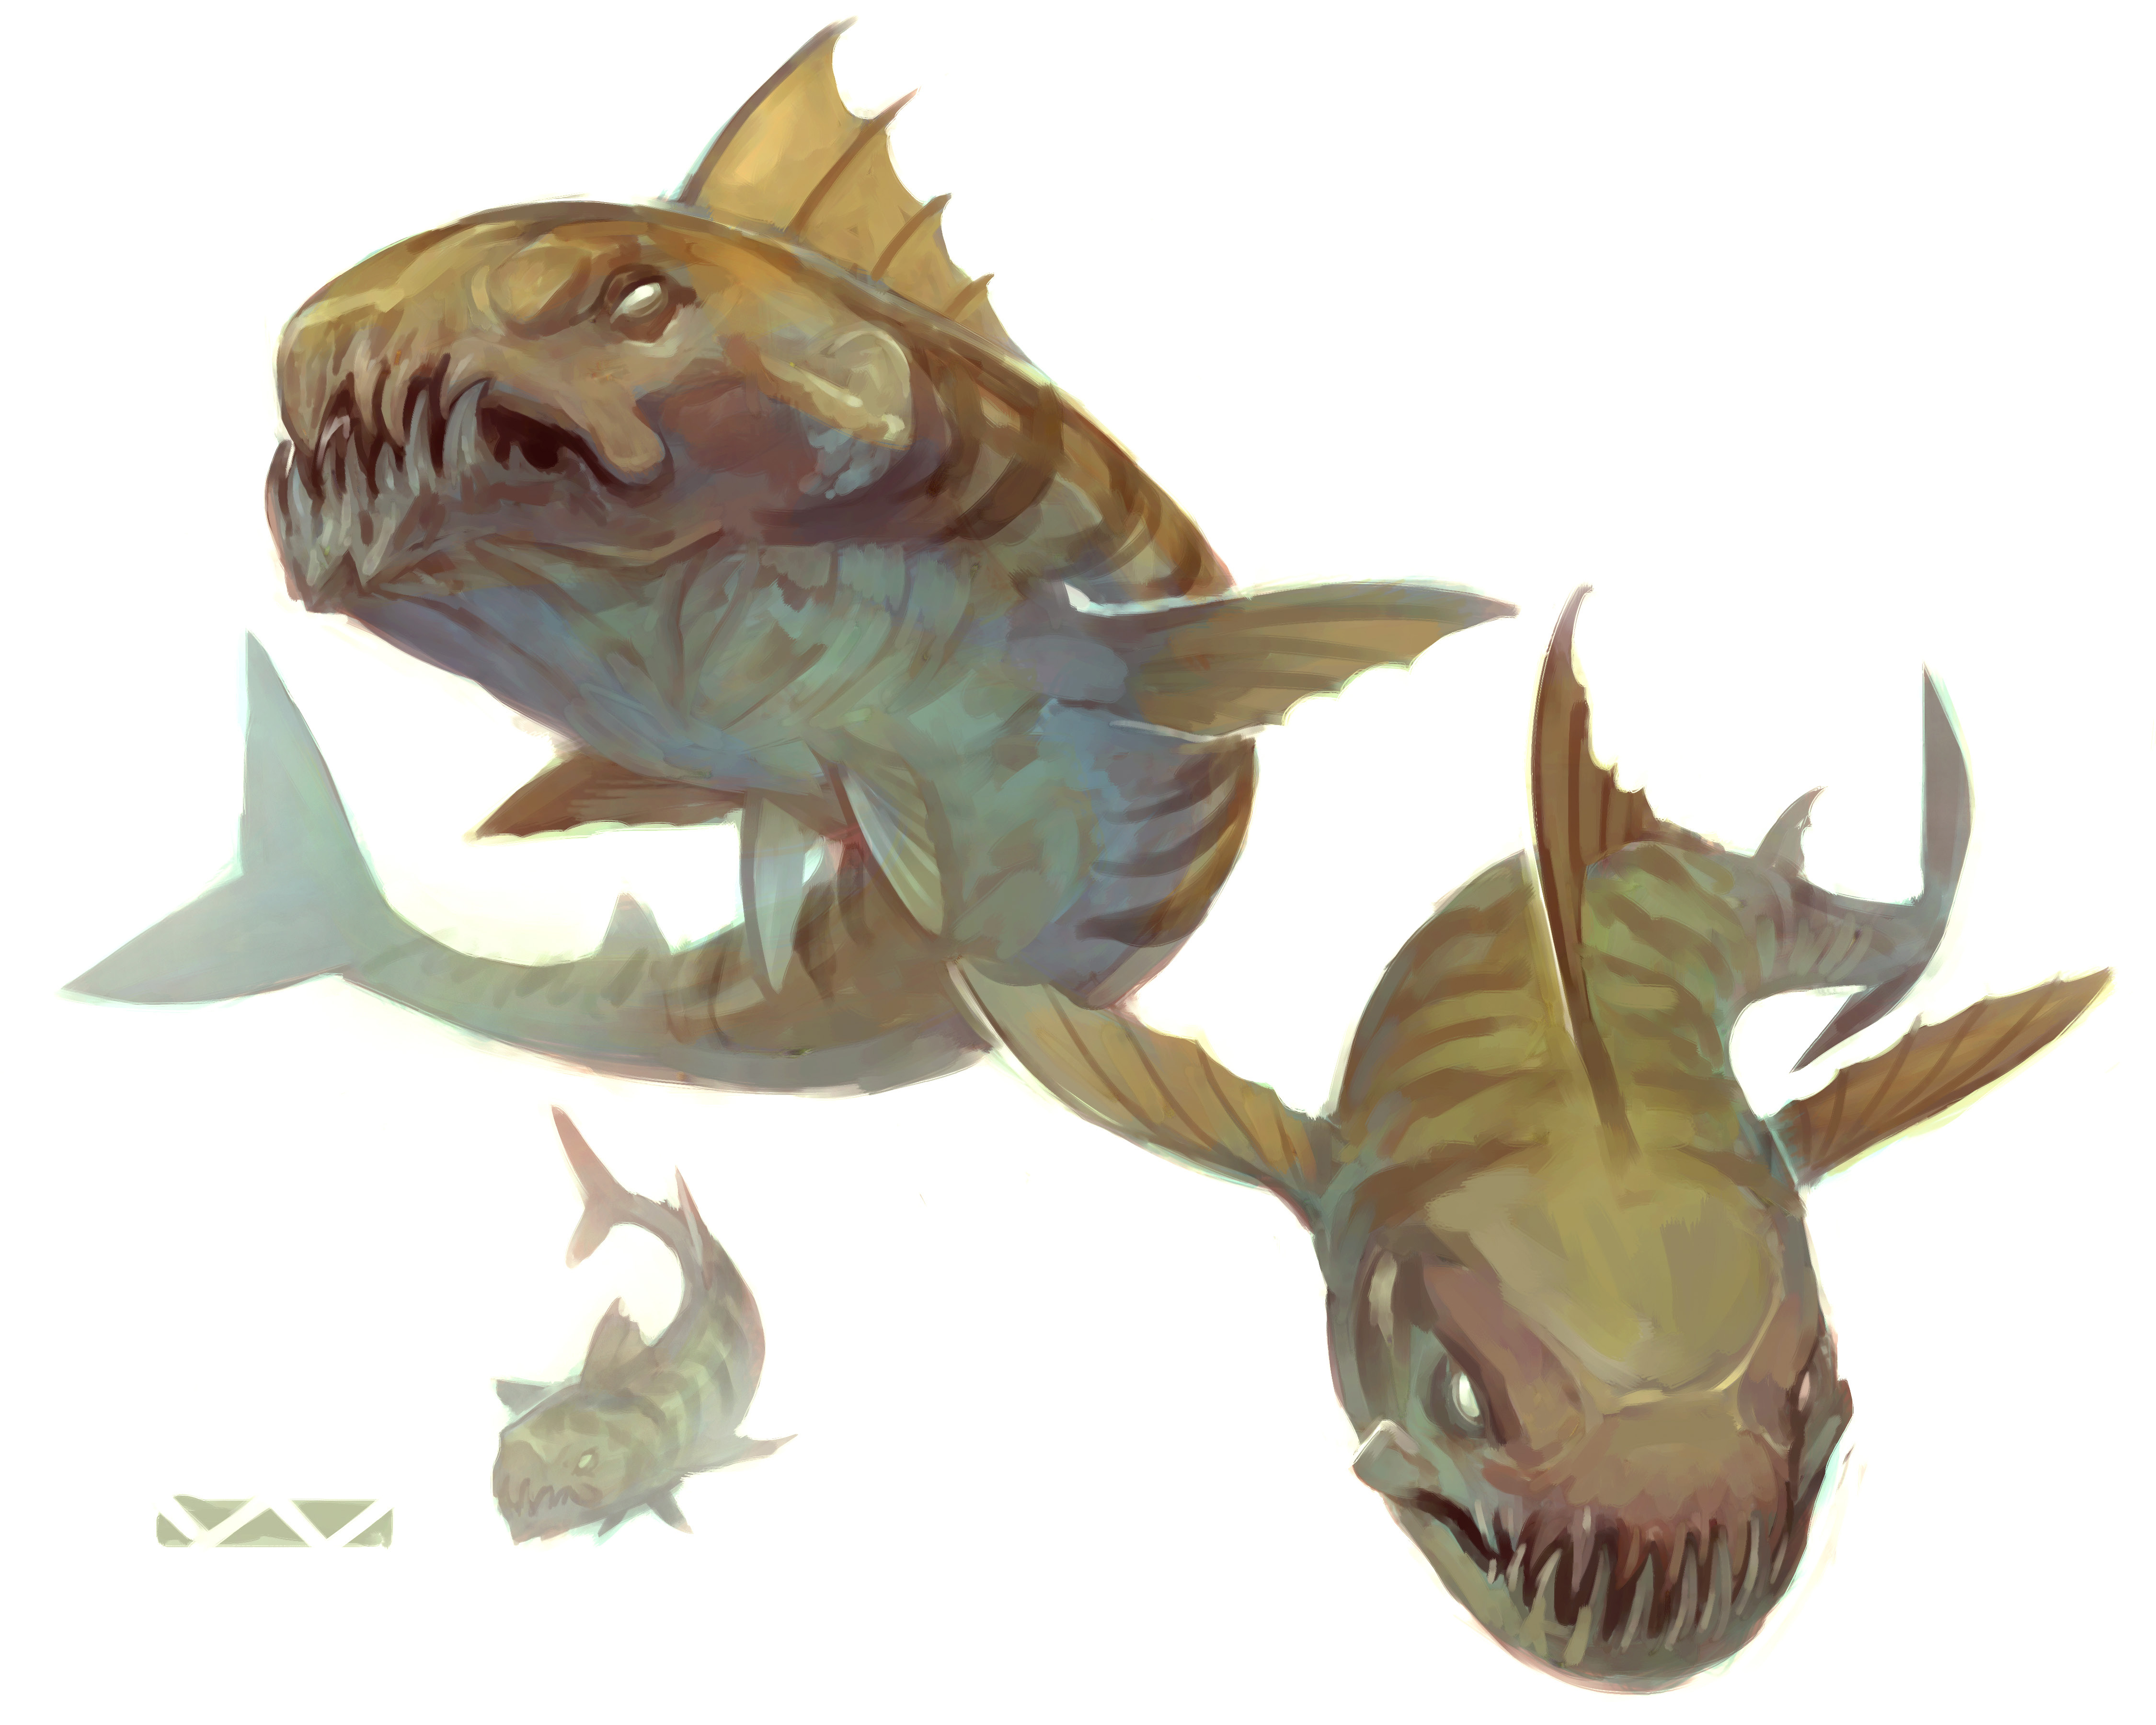 """stephen-wood """"Merrow Wolf"""" - by Stephen Wood Dungeon Master's Guild """"Angler: a Ranger's Path"""" (2018-02) © Wizards of the Coast e dell'autore, tutti i diritti riservati"""